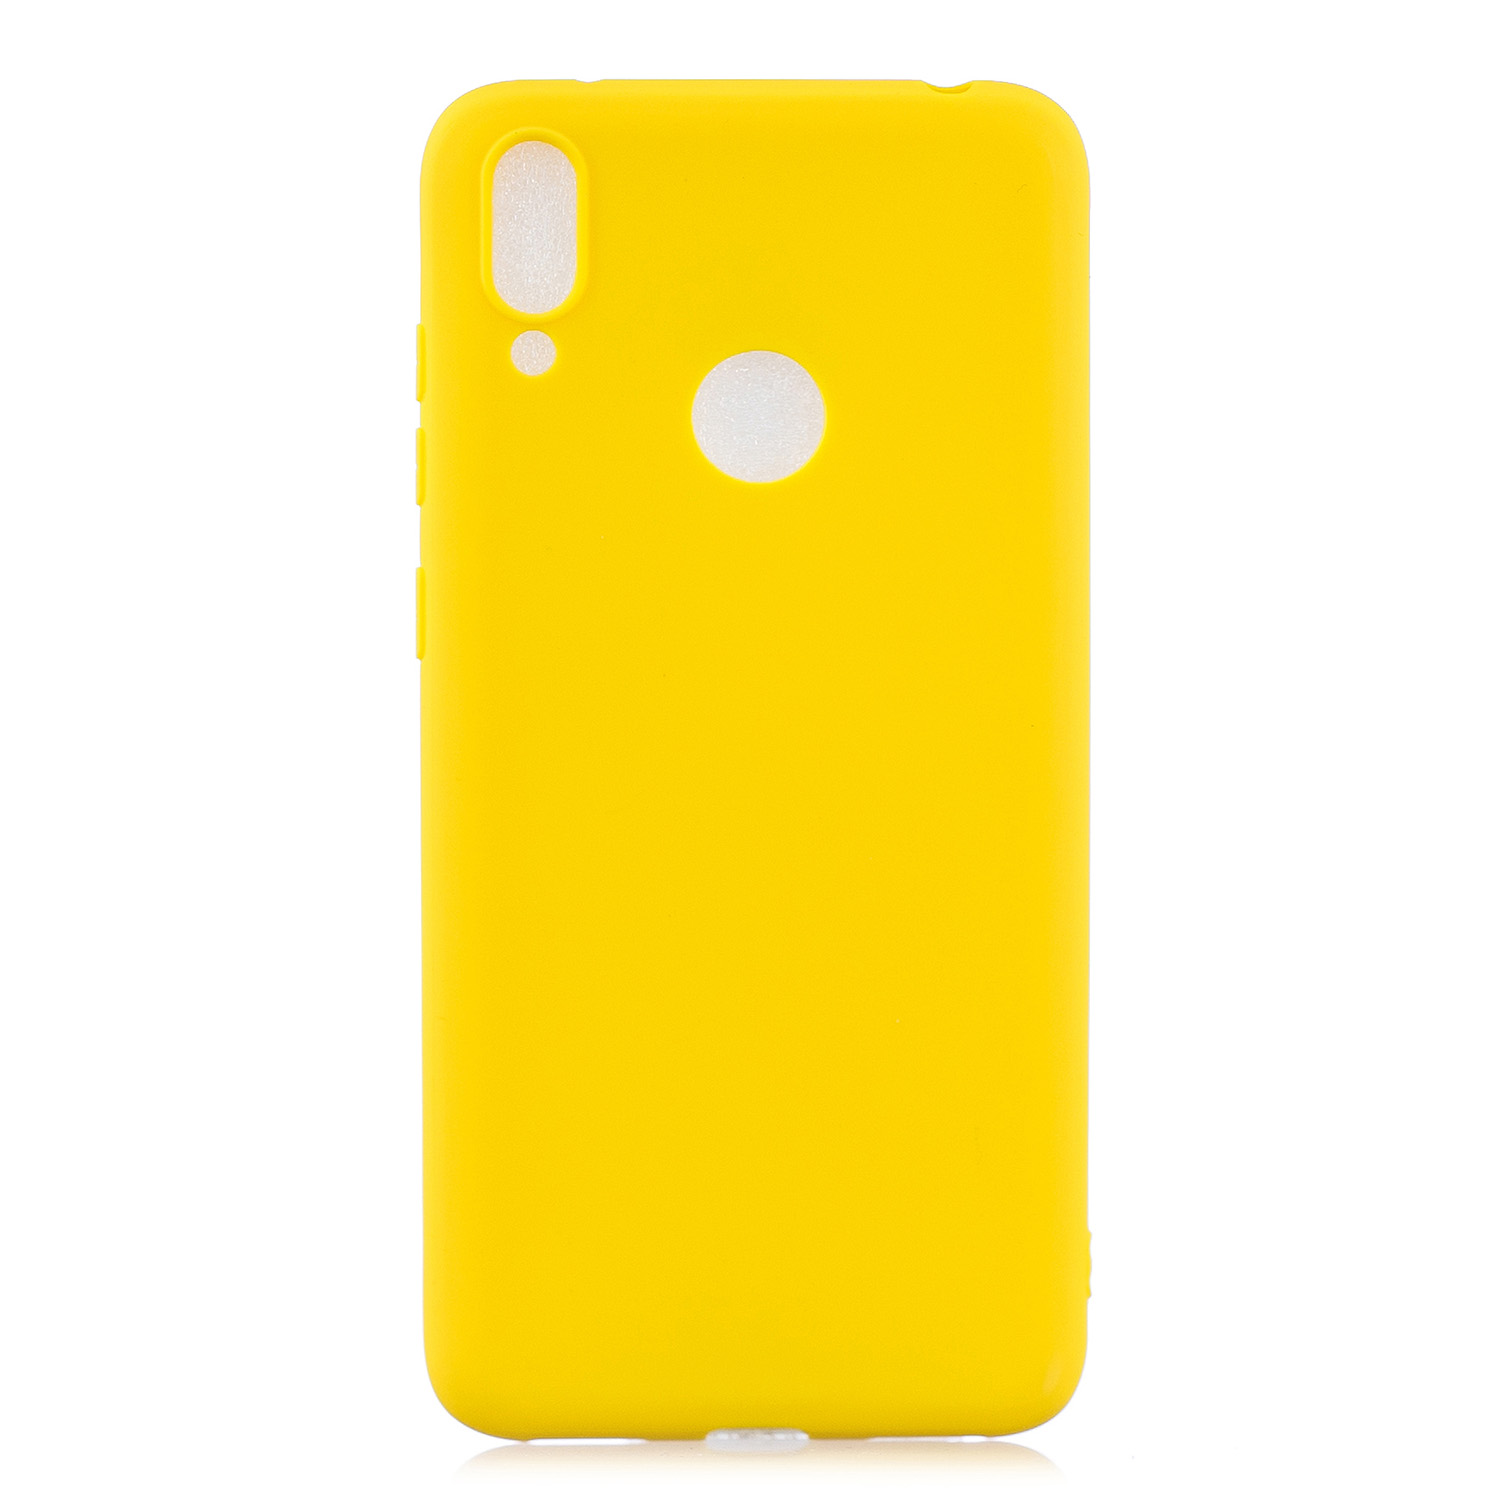 For HUAWEI Y7 2019 Lovely Candy Color Matte TPU Anti-scratch Non-slip Protective Cover Back Case yellow